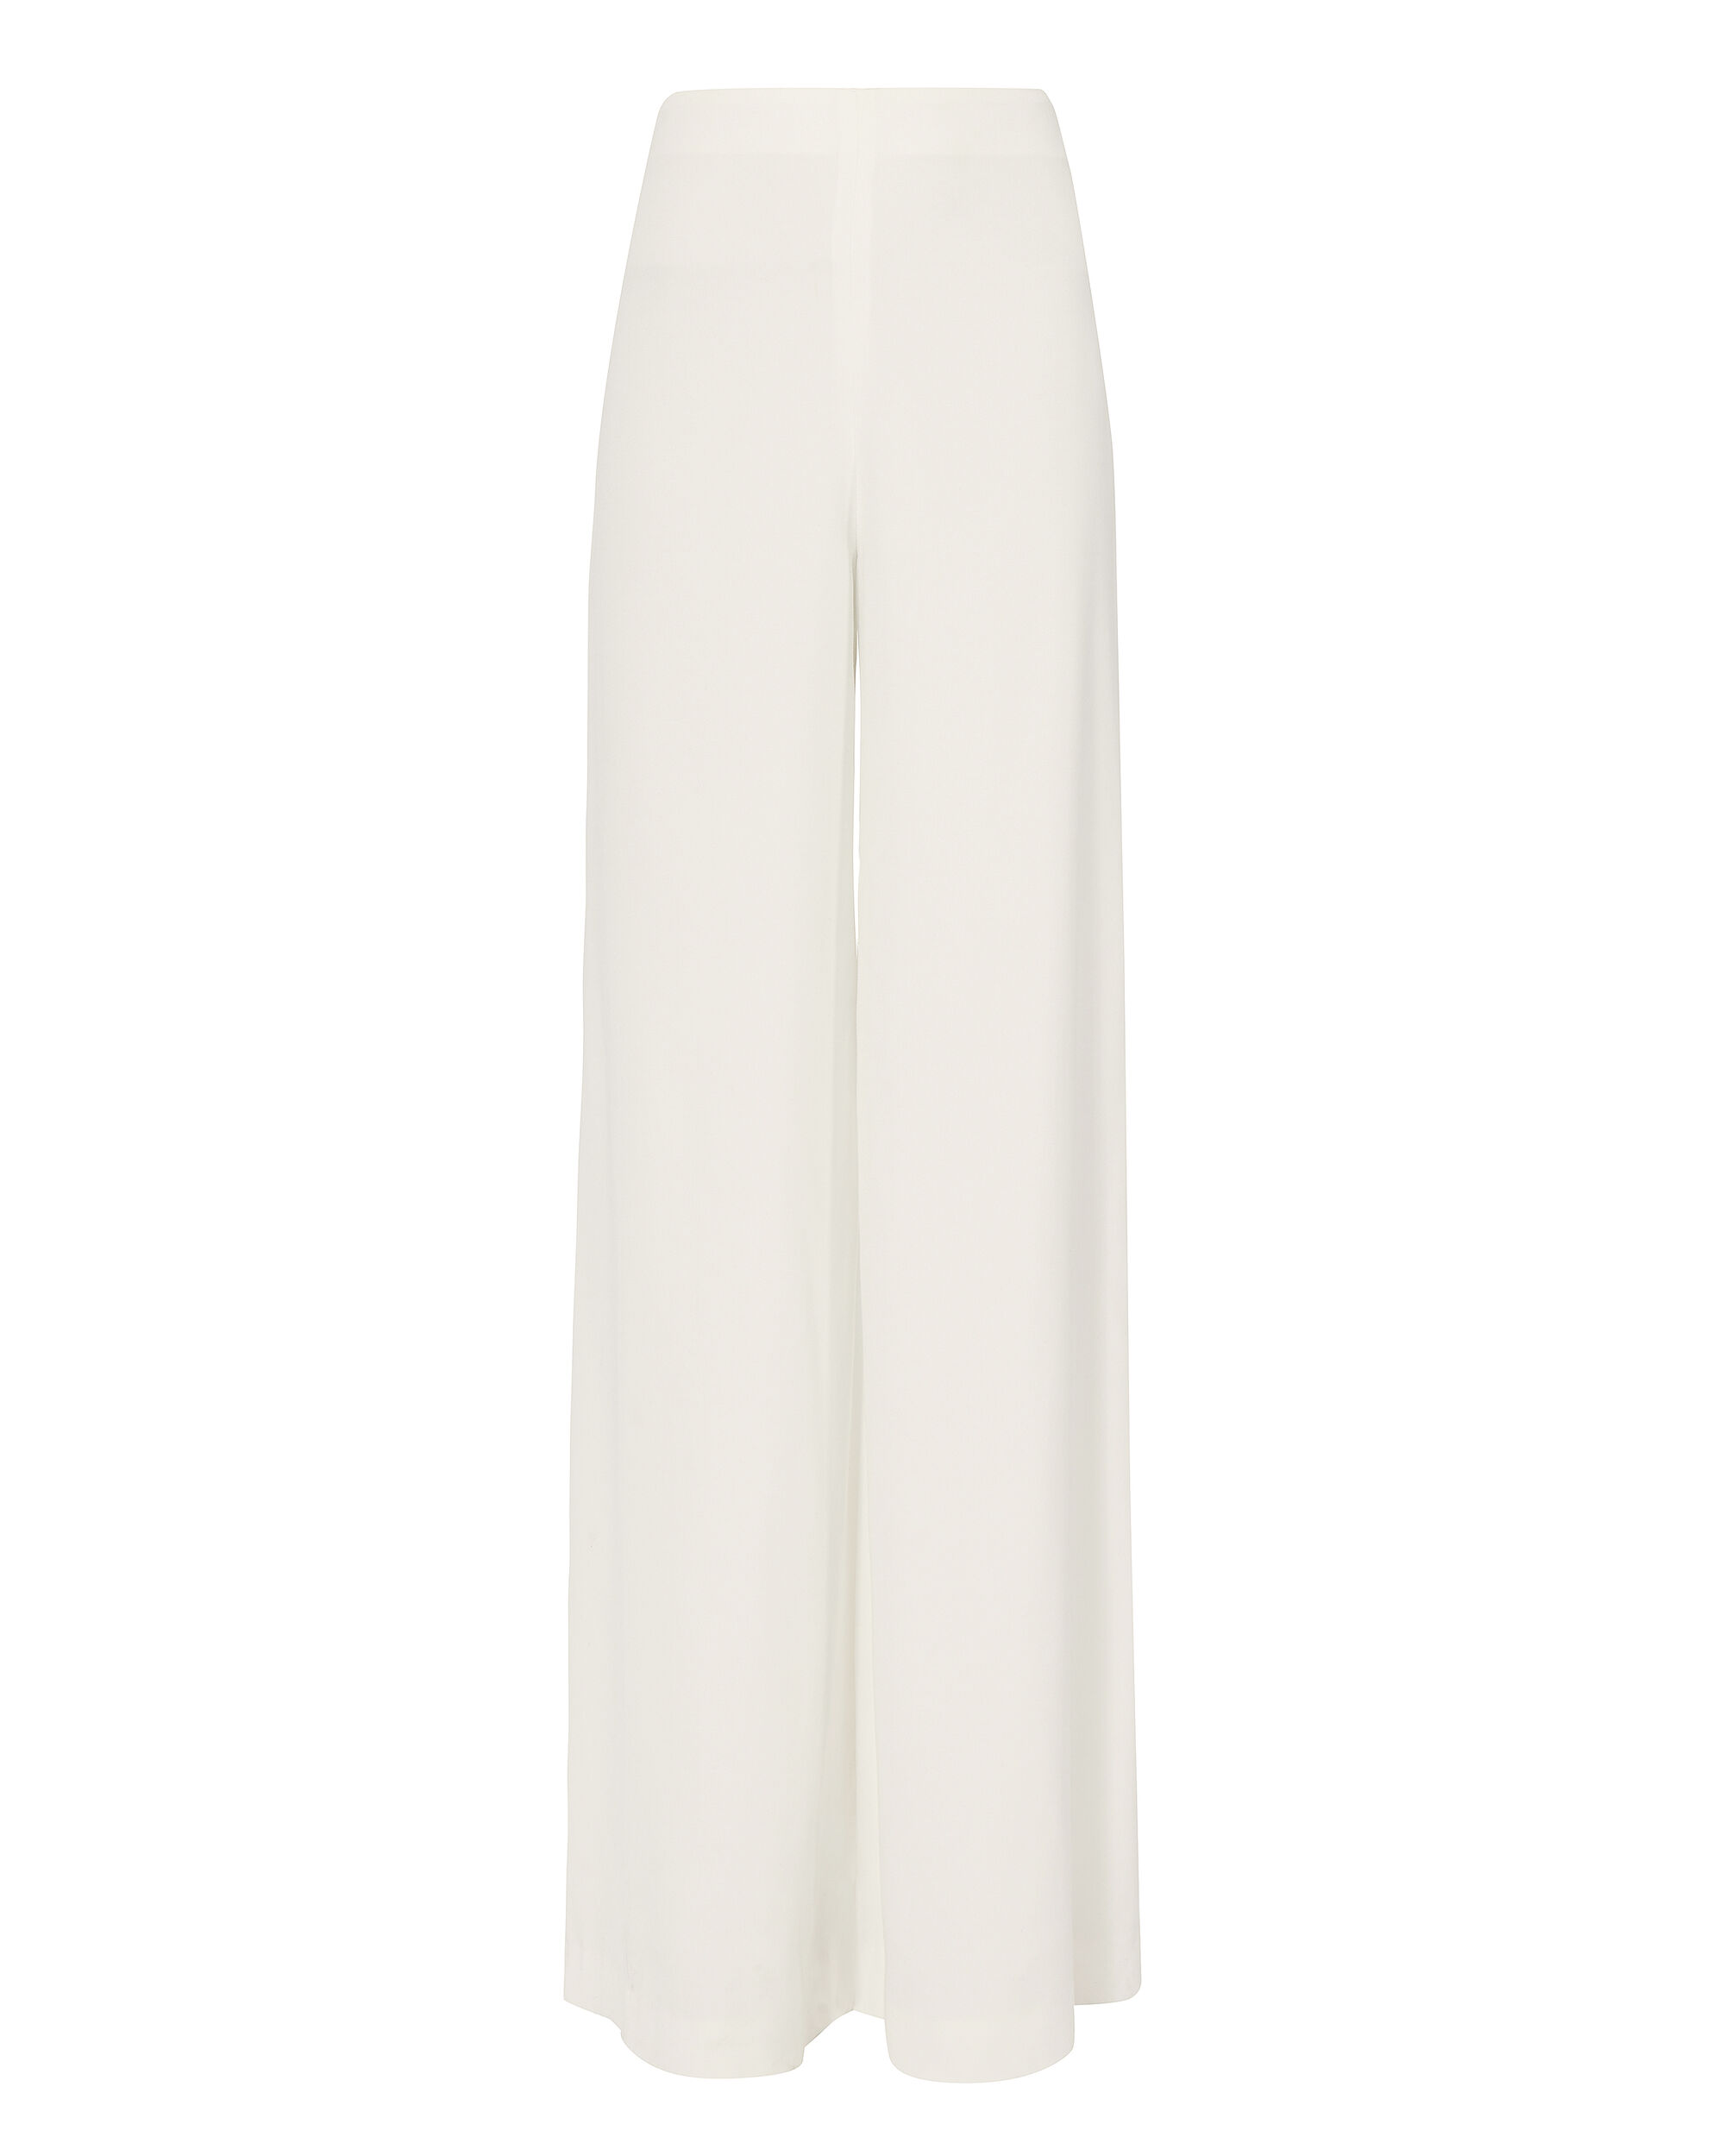 Satin Crepe Palazzo Wide Leg Pants, WHITE, hi-res